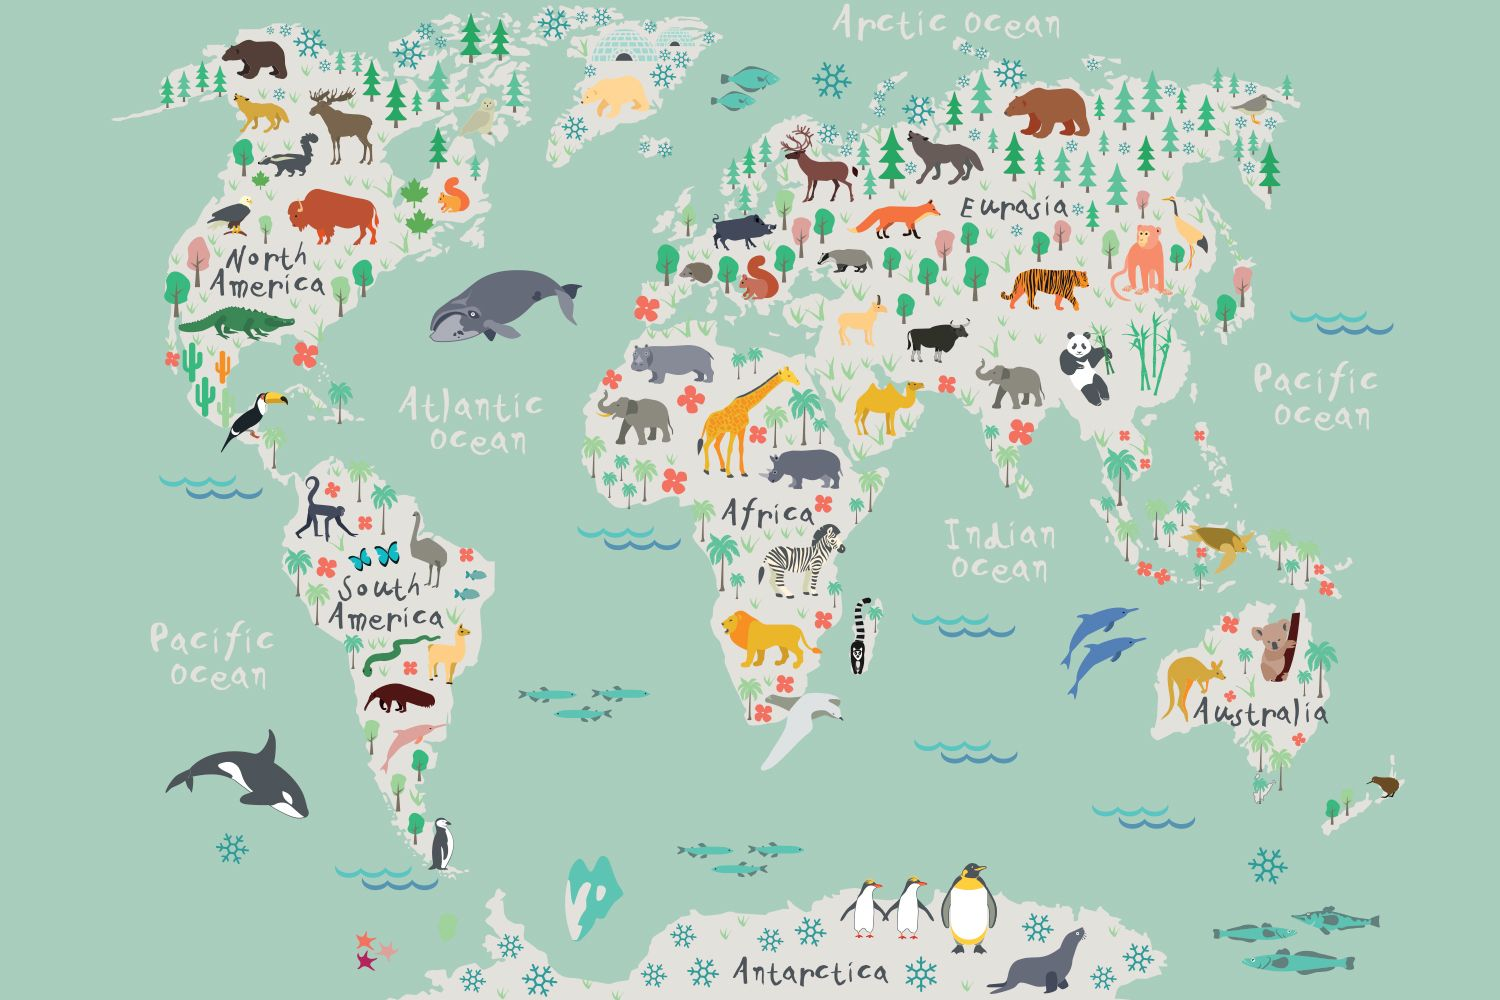 Safari kids map mural wallpaper kamer nathan pinterest safari kids map mural wallpaper childrens room think it may be too busy for us but really love the rifle esque map gumiabroncs Choice Image